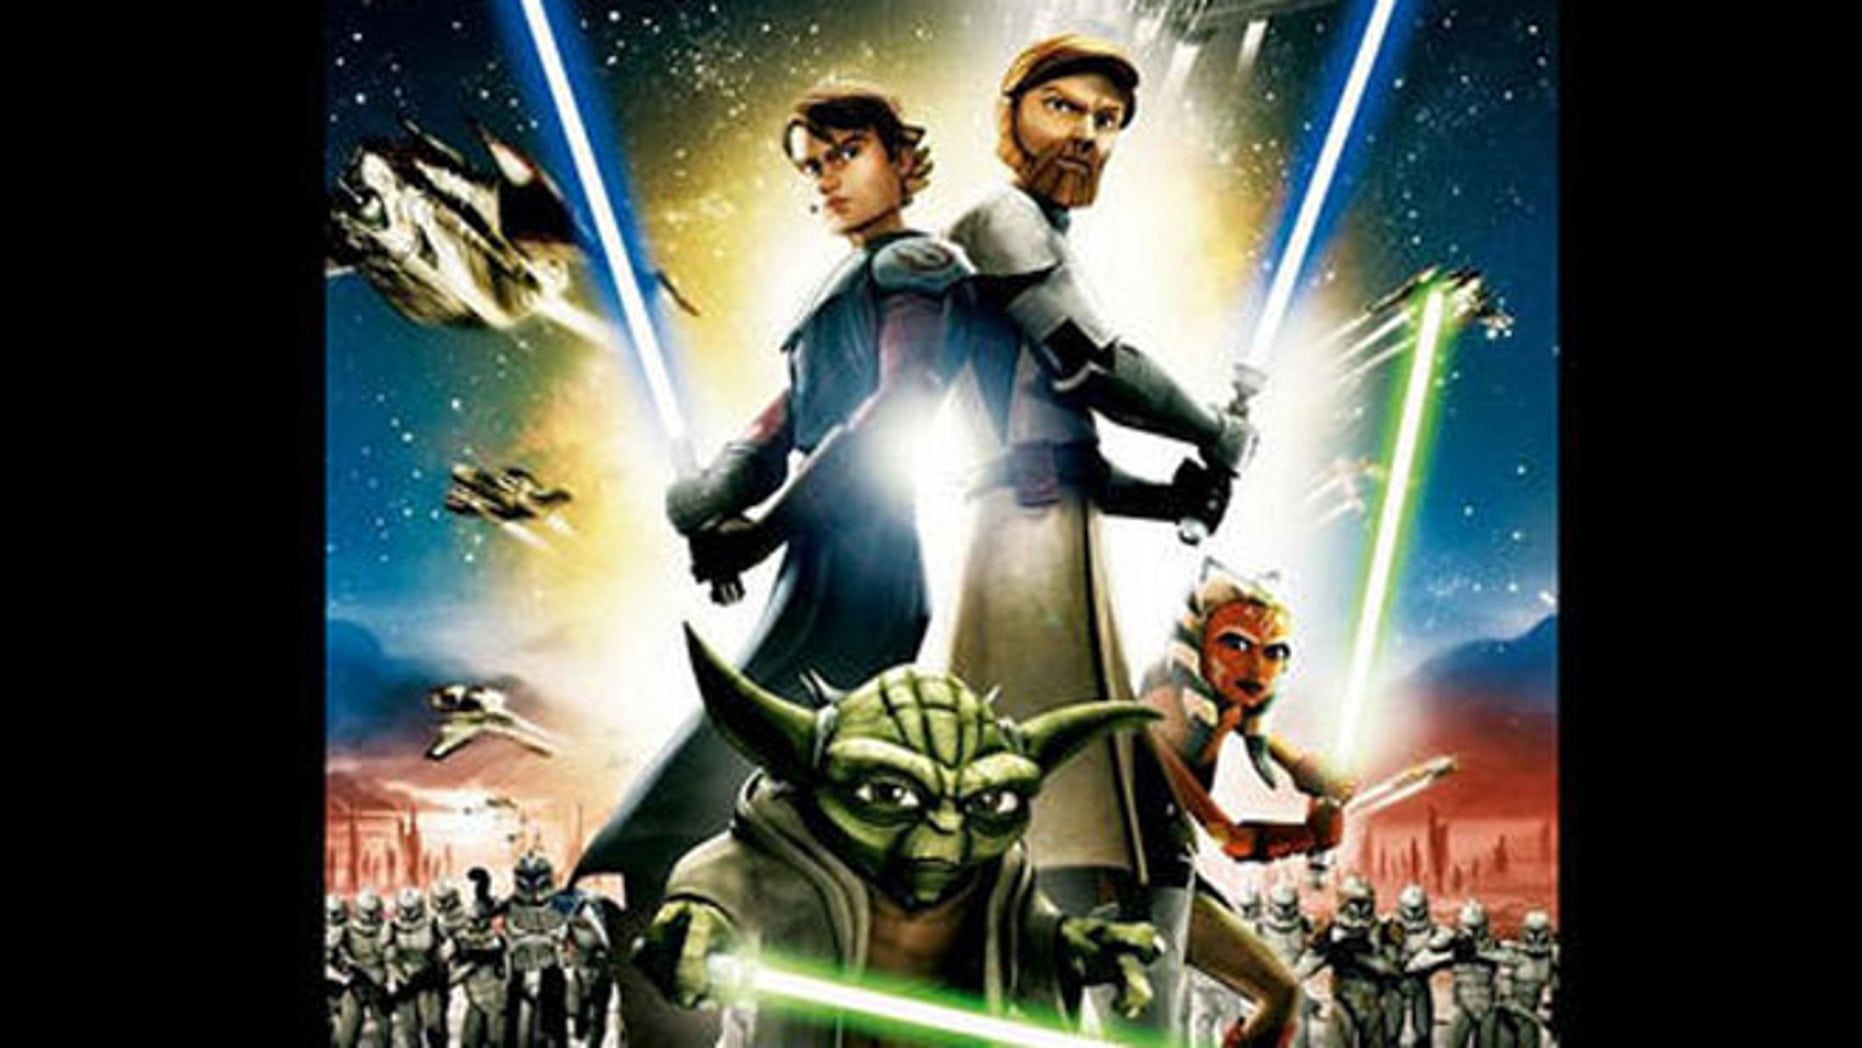 """""""The Clone Wars"""" was a """"Star Wars"""" animated series that premiered in 2008. The franchise just announced a new cartoon series is set for fall 2014."""